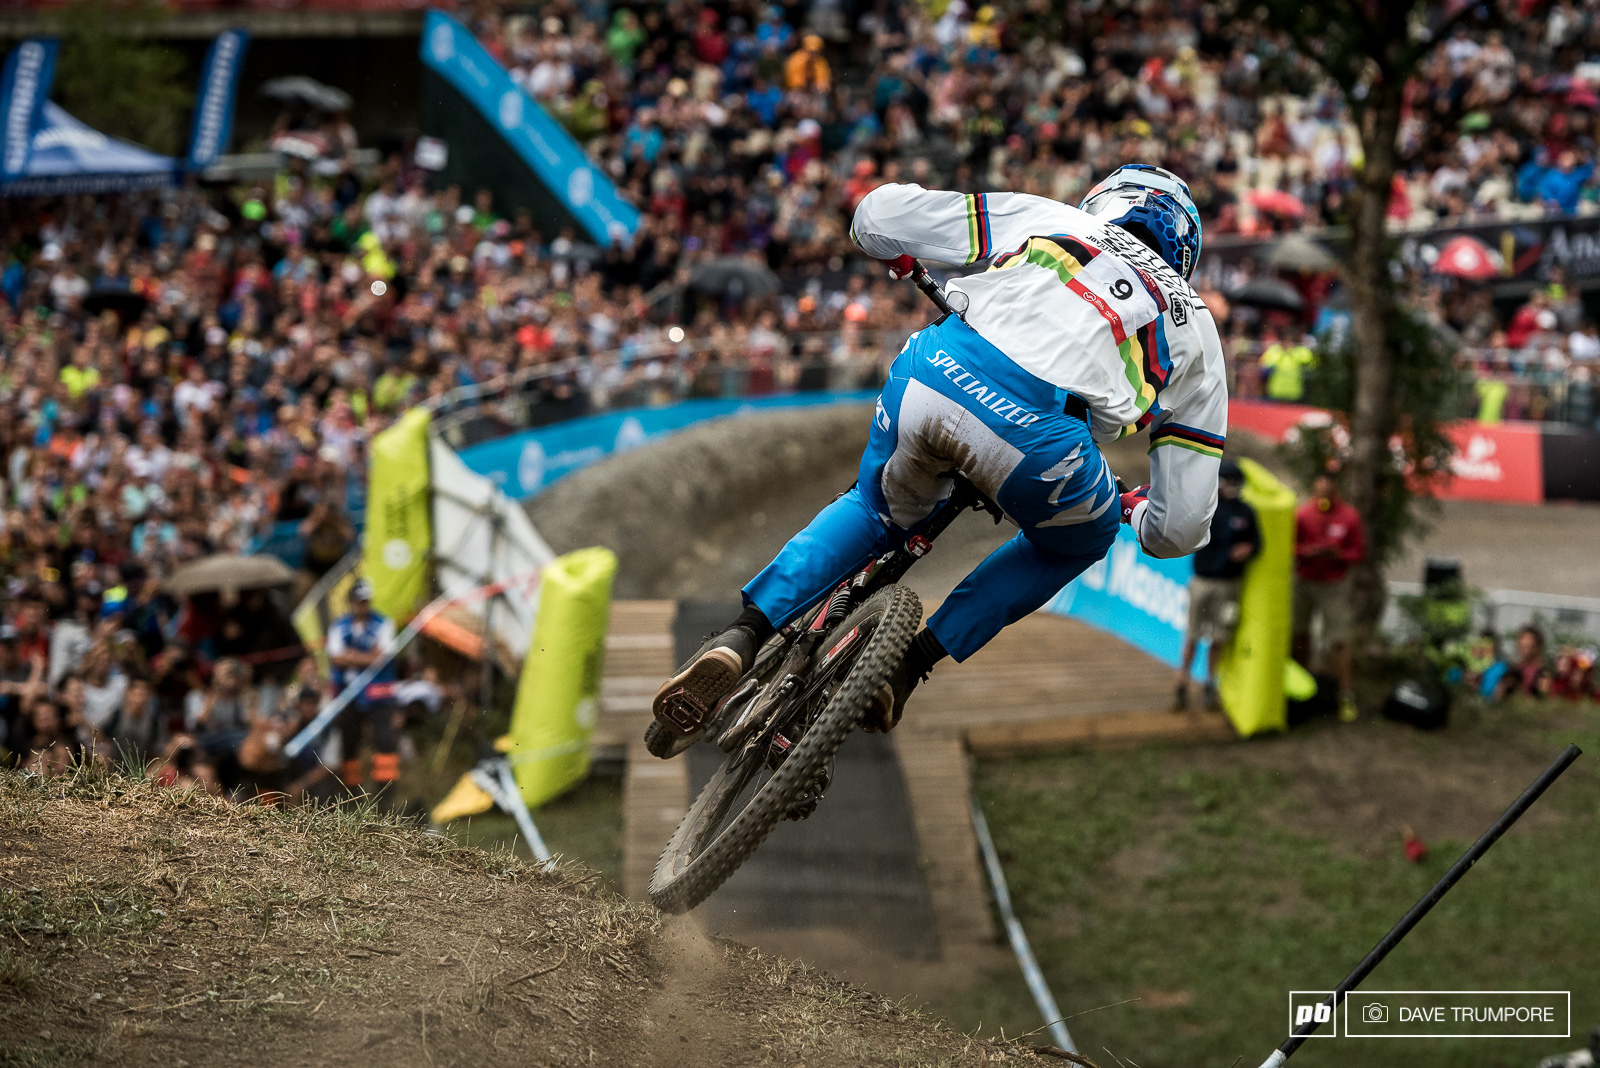 The last time Loic raced here he went home with those rainbow stripes. He was happy to walk away with a third today and has his sights firmly set on defending his world title next weekend in Italy.